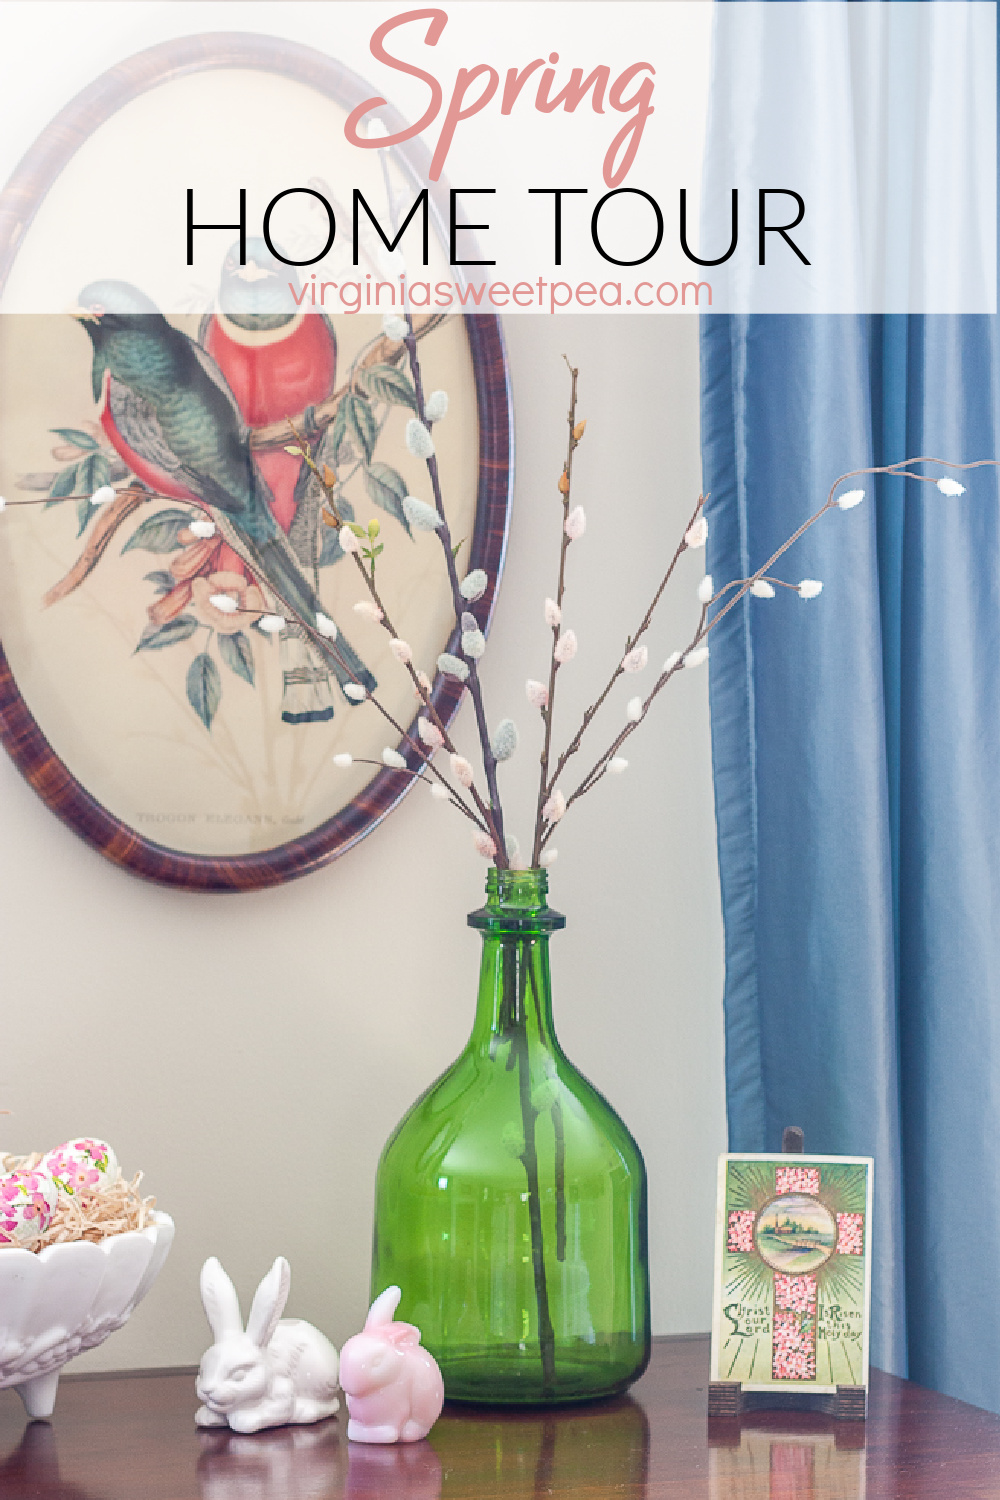 Get ideas for decorating for spring from this home decorated for spring with vintage family treasures.  Don't miss the creative ideas shared.  You are sure to find ideas to use for spring in your home. via @spaula